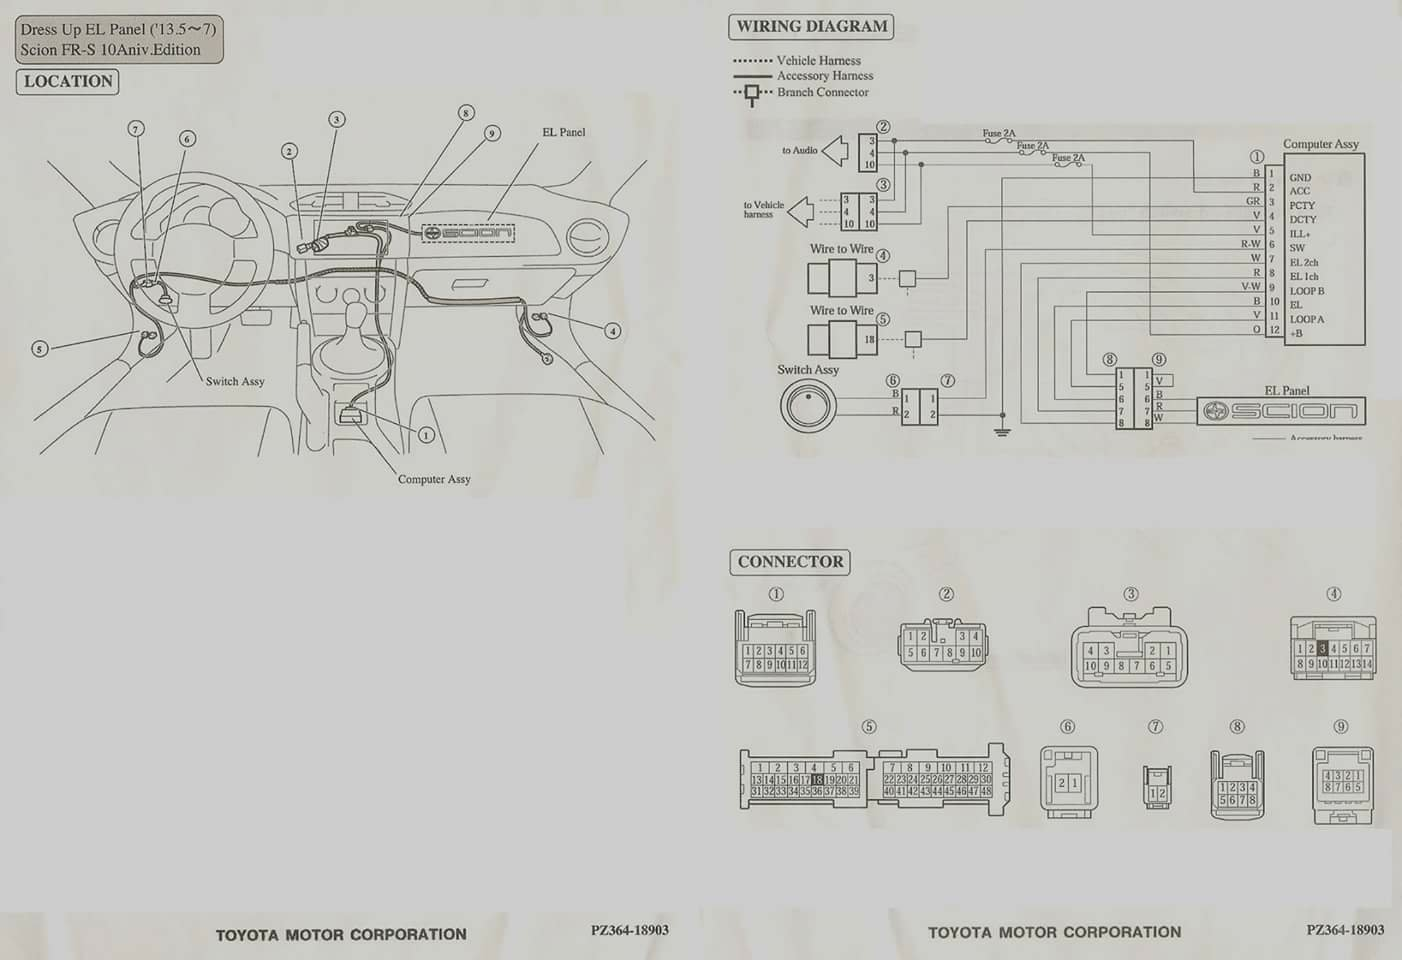 scion frs stereo wiring diagram  scion  auto wiring diagram